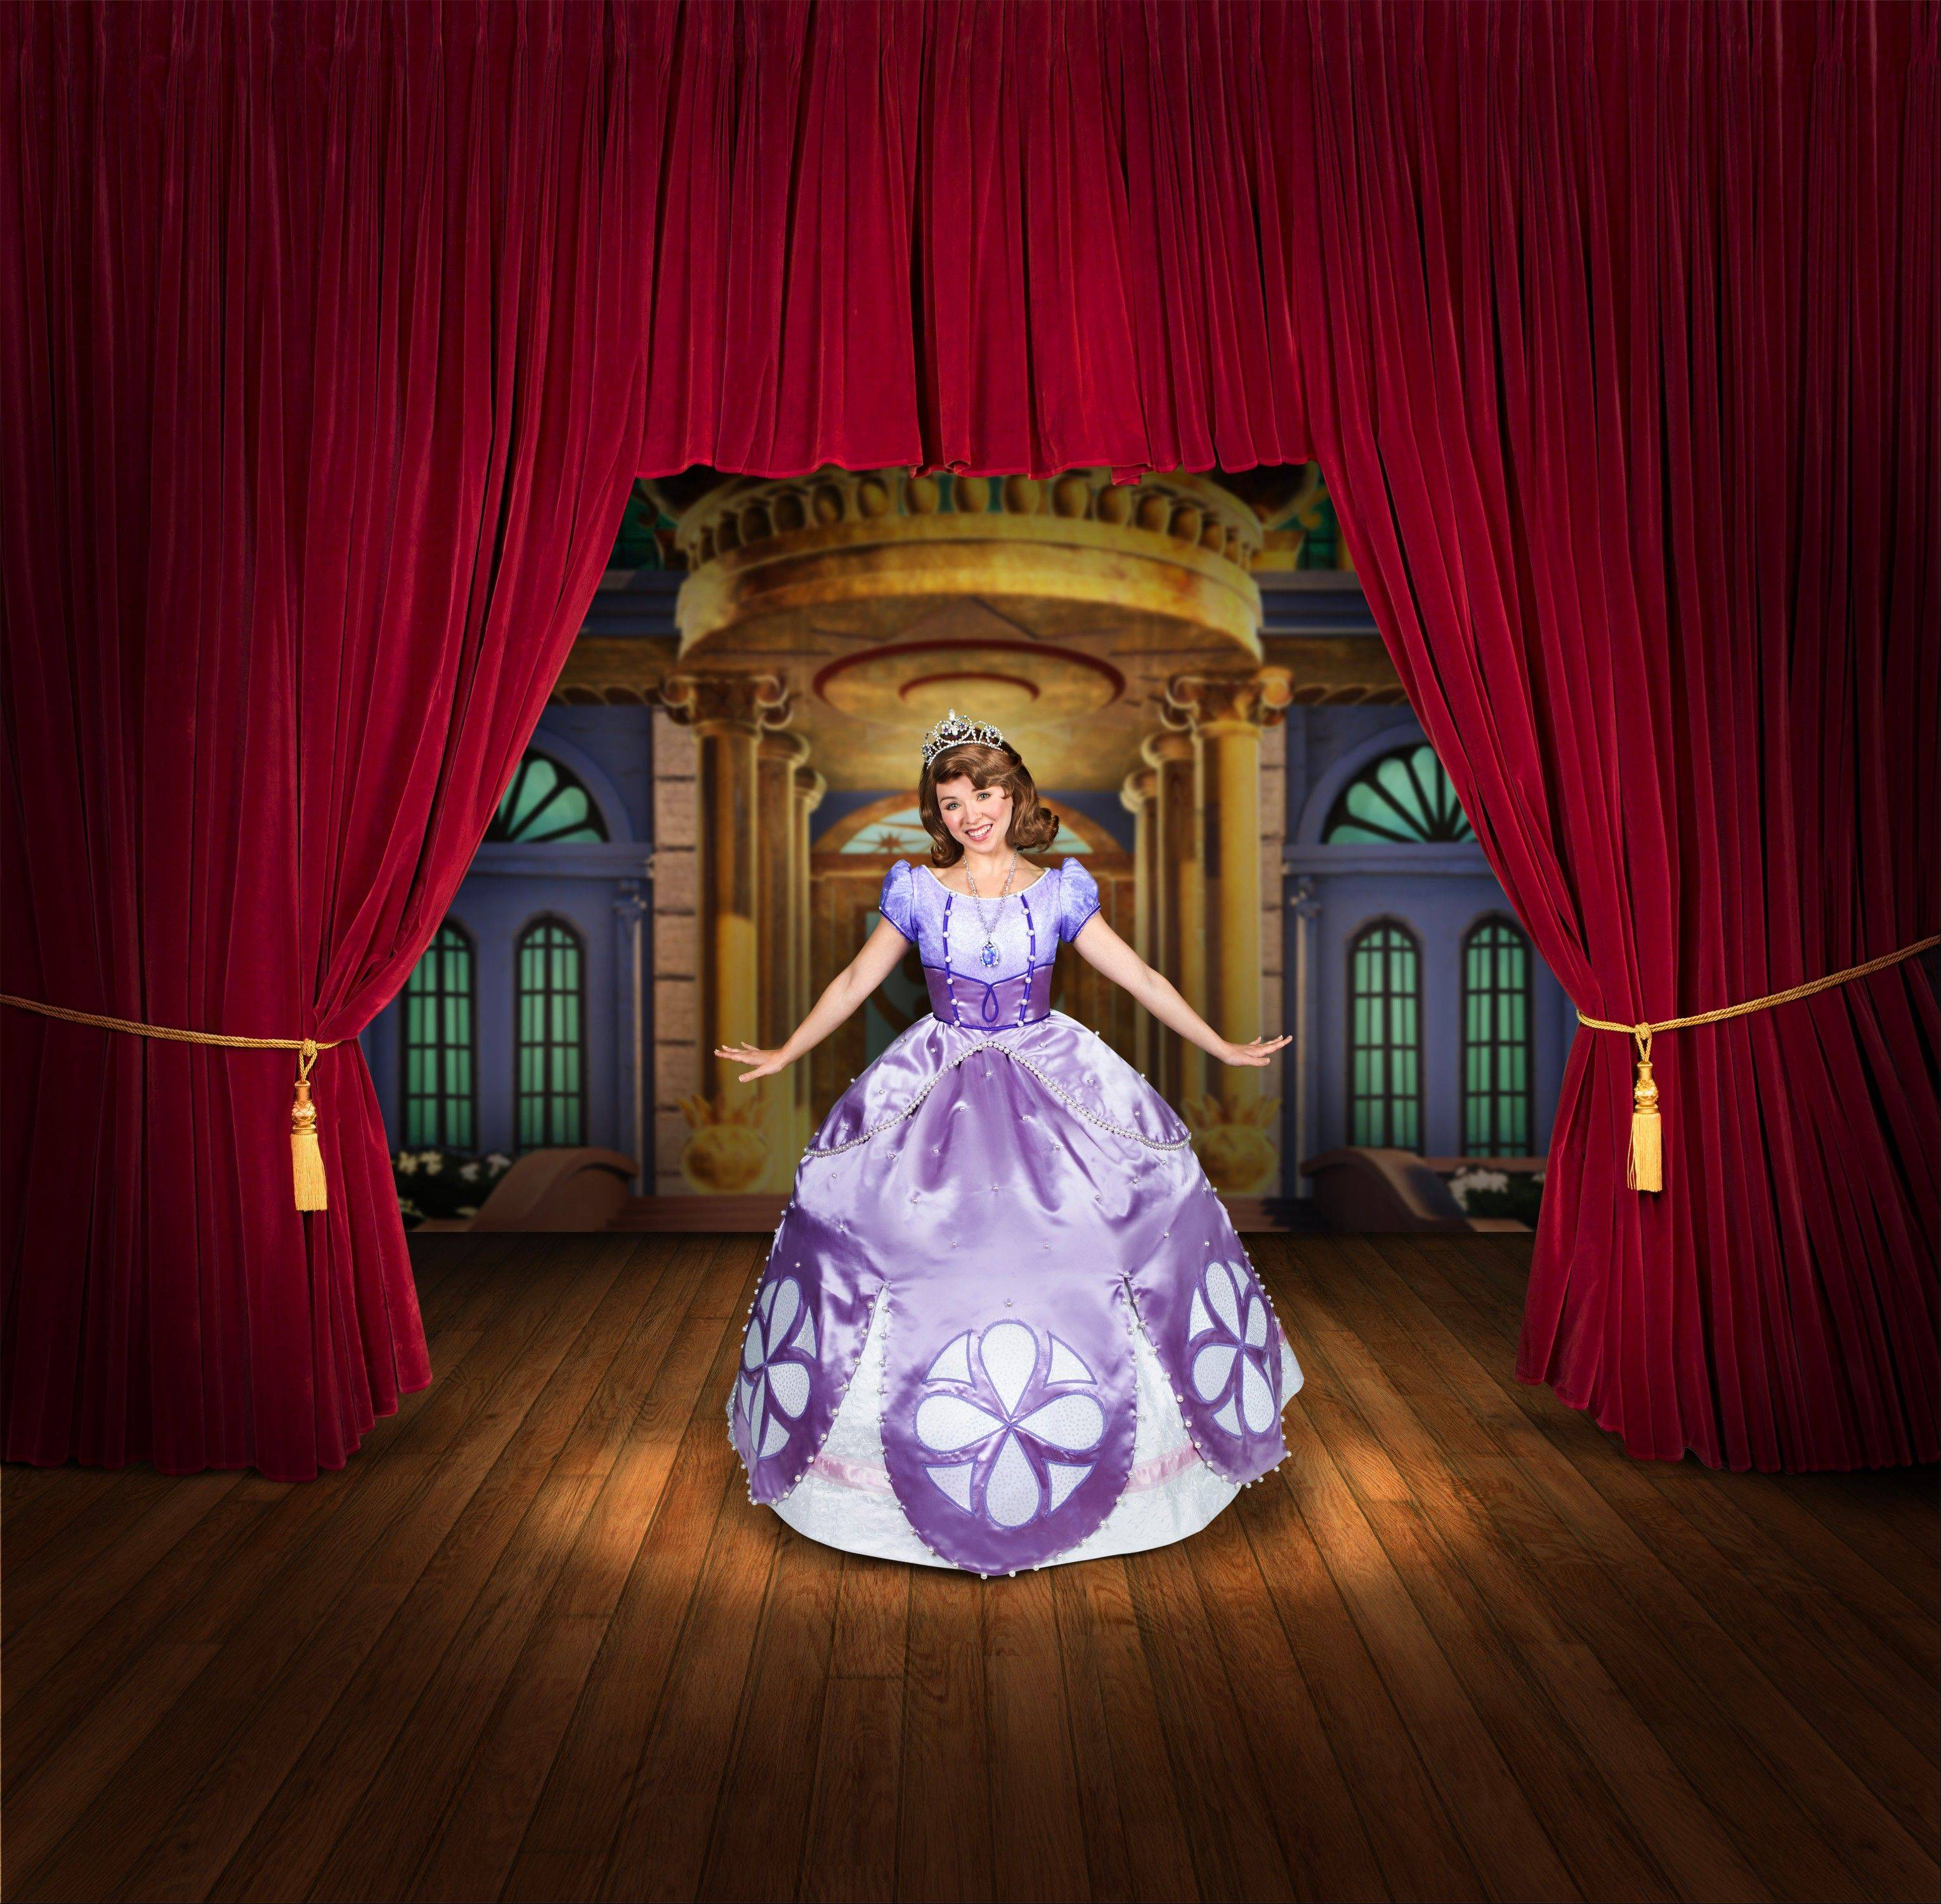 Sofia, the popular Disney princess character from the hit Disney Channel show �Sofia the First,� is part of the �Disney Junior Live on Tour! Pirate and Princess Adventure� show, coming to the Rosemont Theatre.